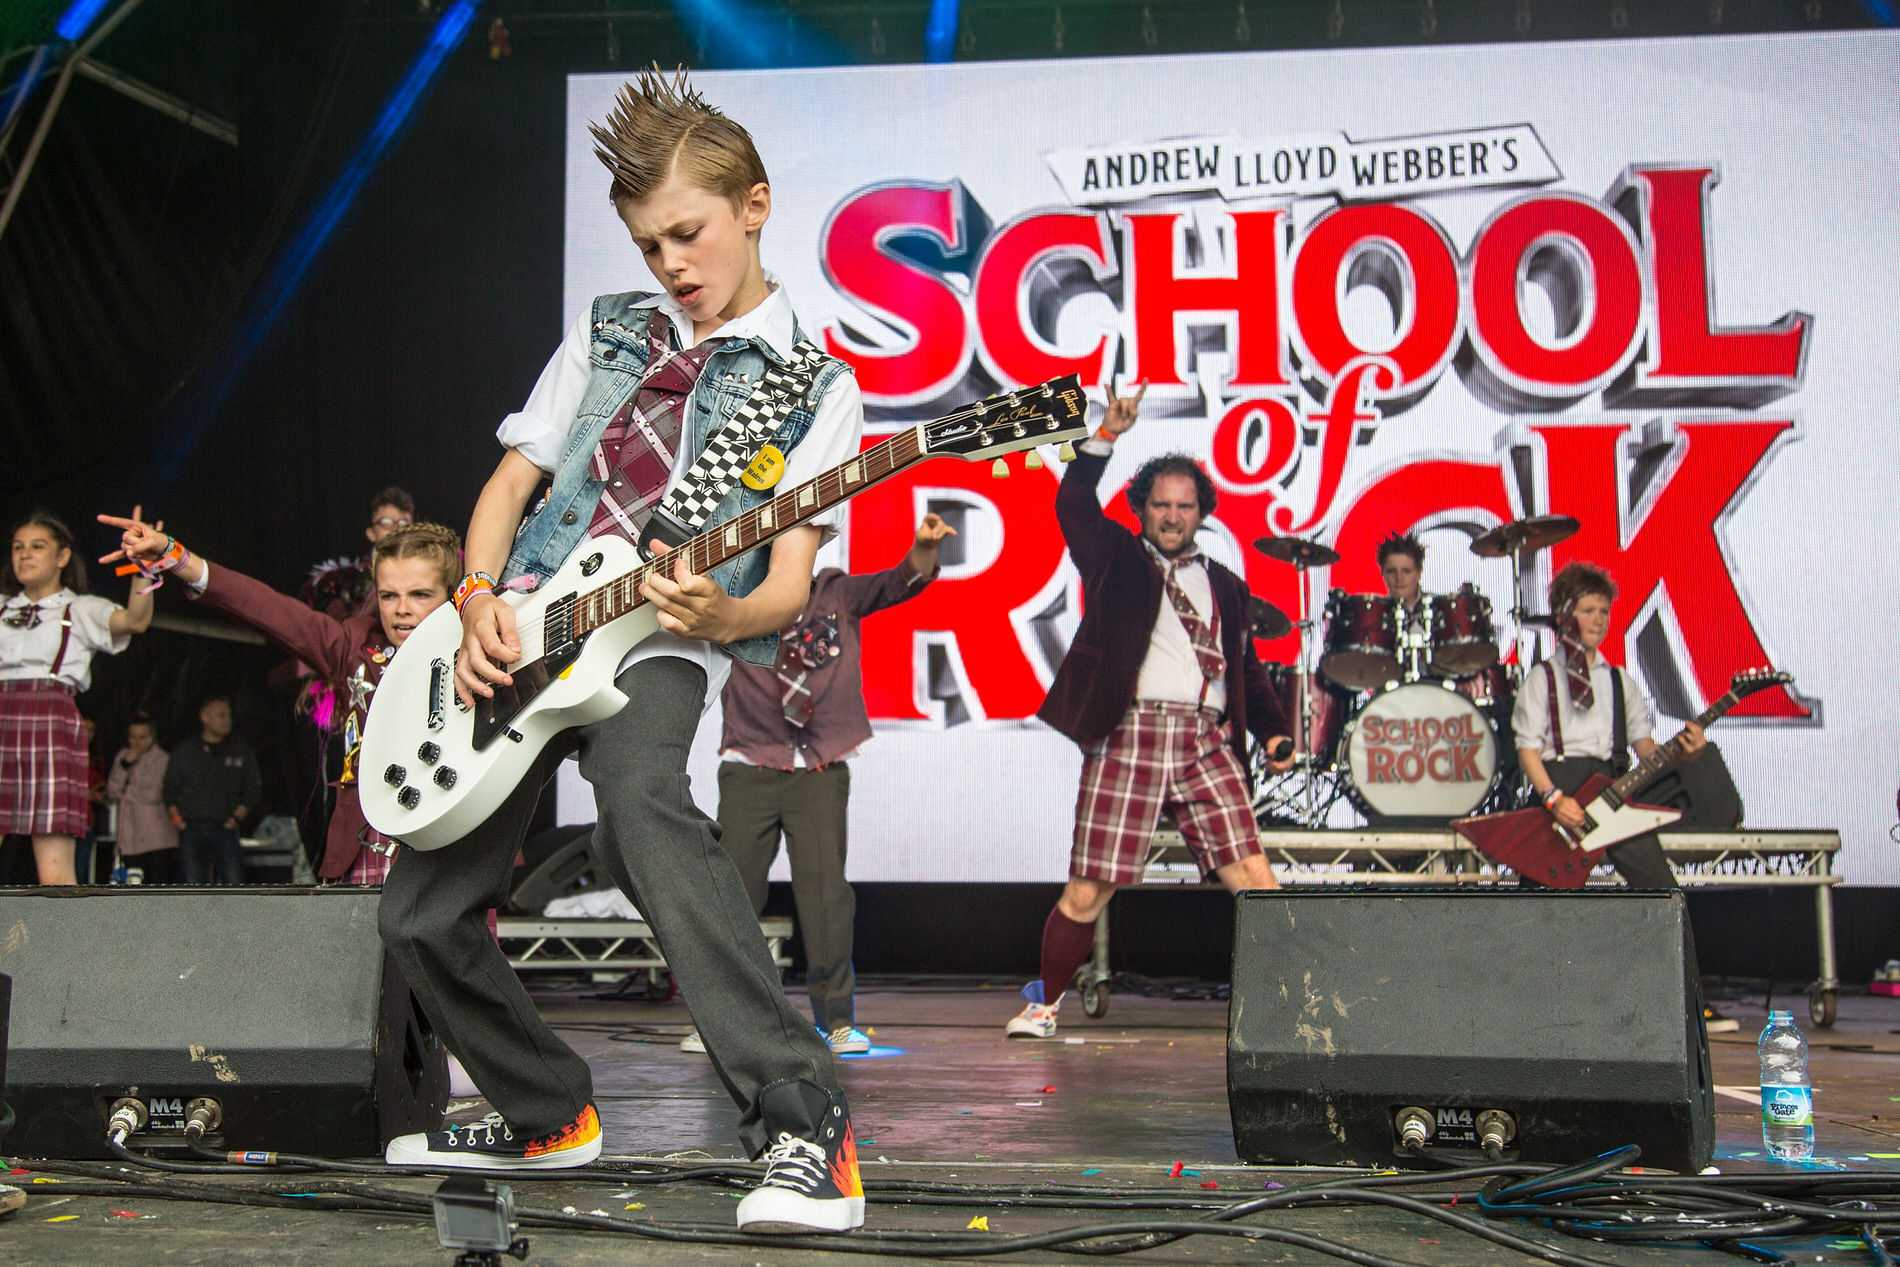 66-CampBestival2017-SchoolofRock-RB-F61A0890.jpg